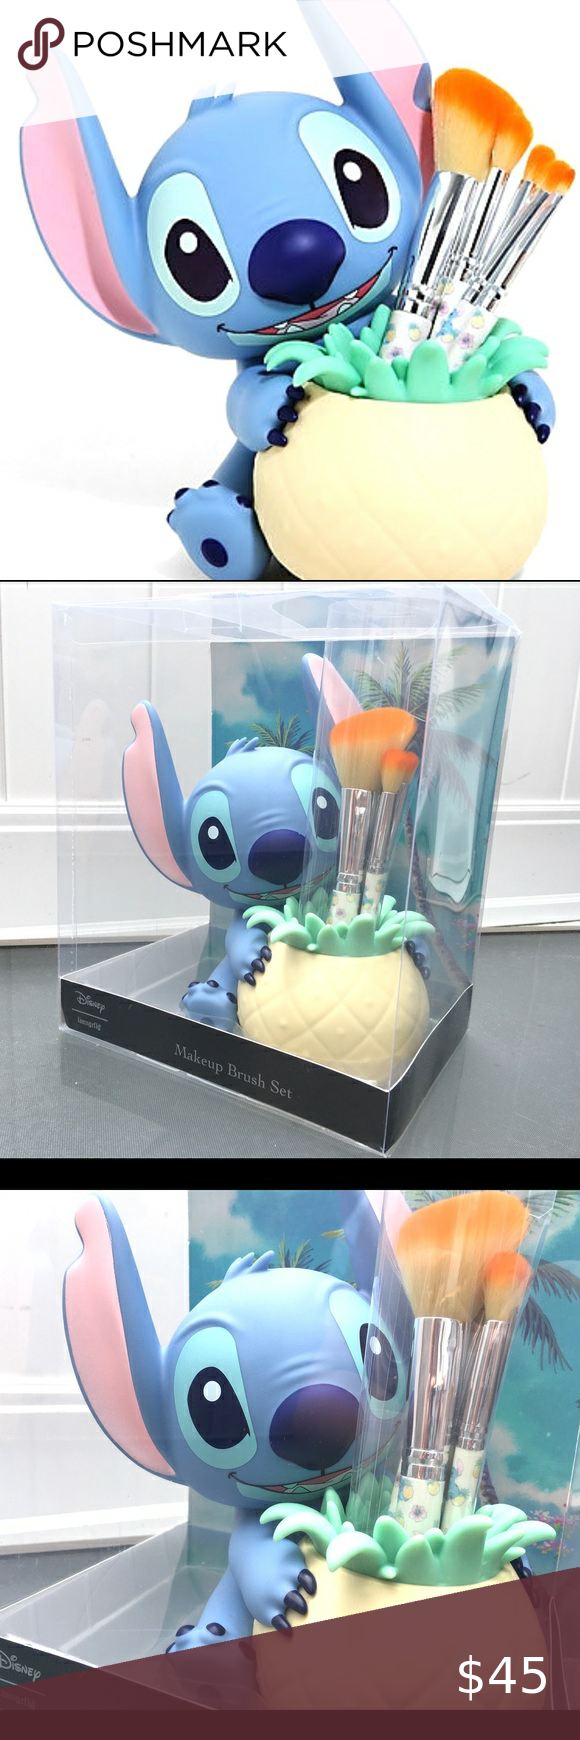 Stitch🍍Makeup Brush Ser in 2020 Stitches makeup, Clothes